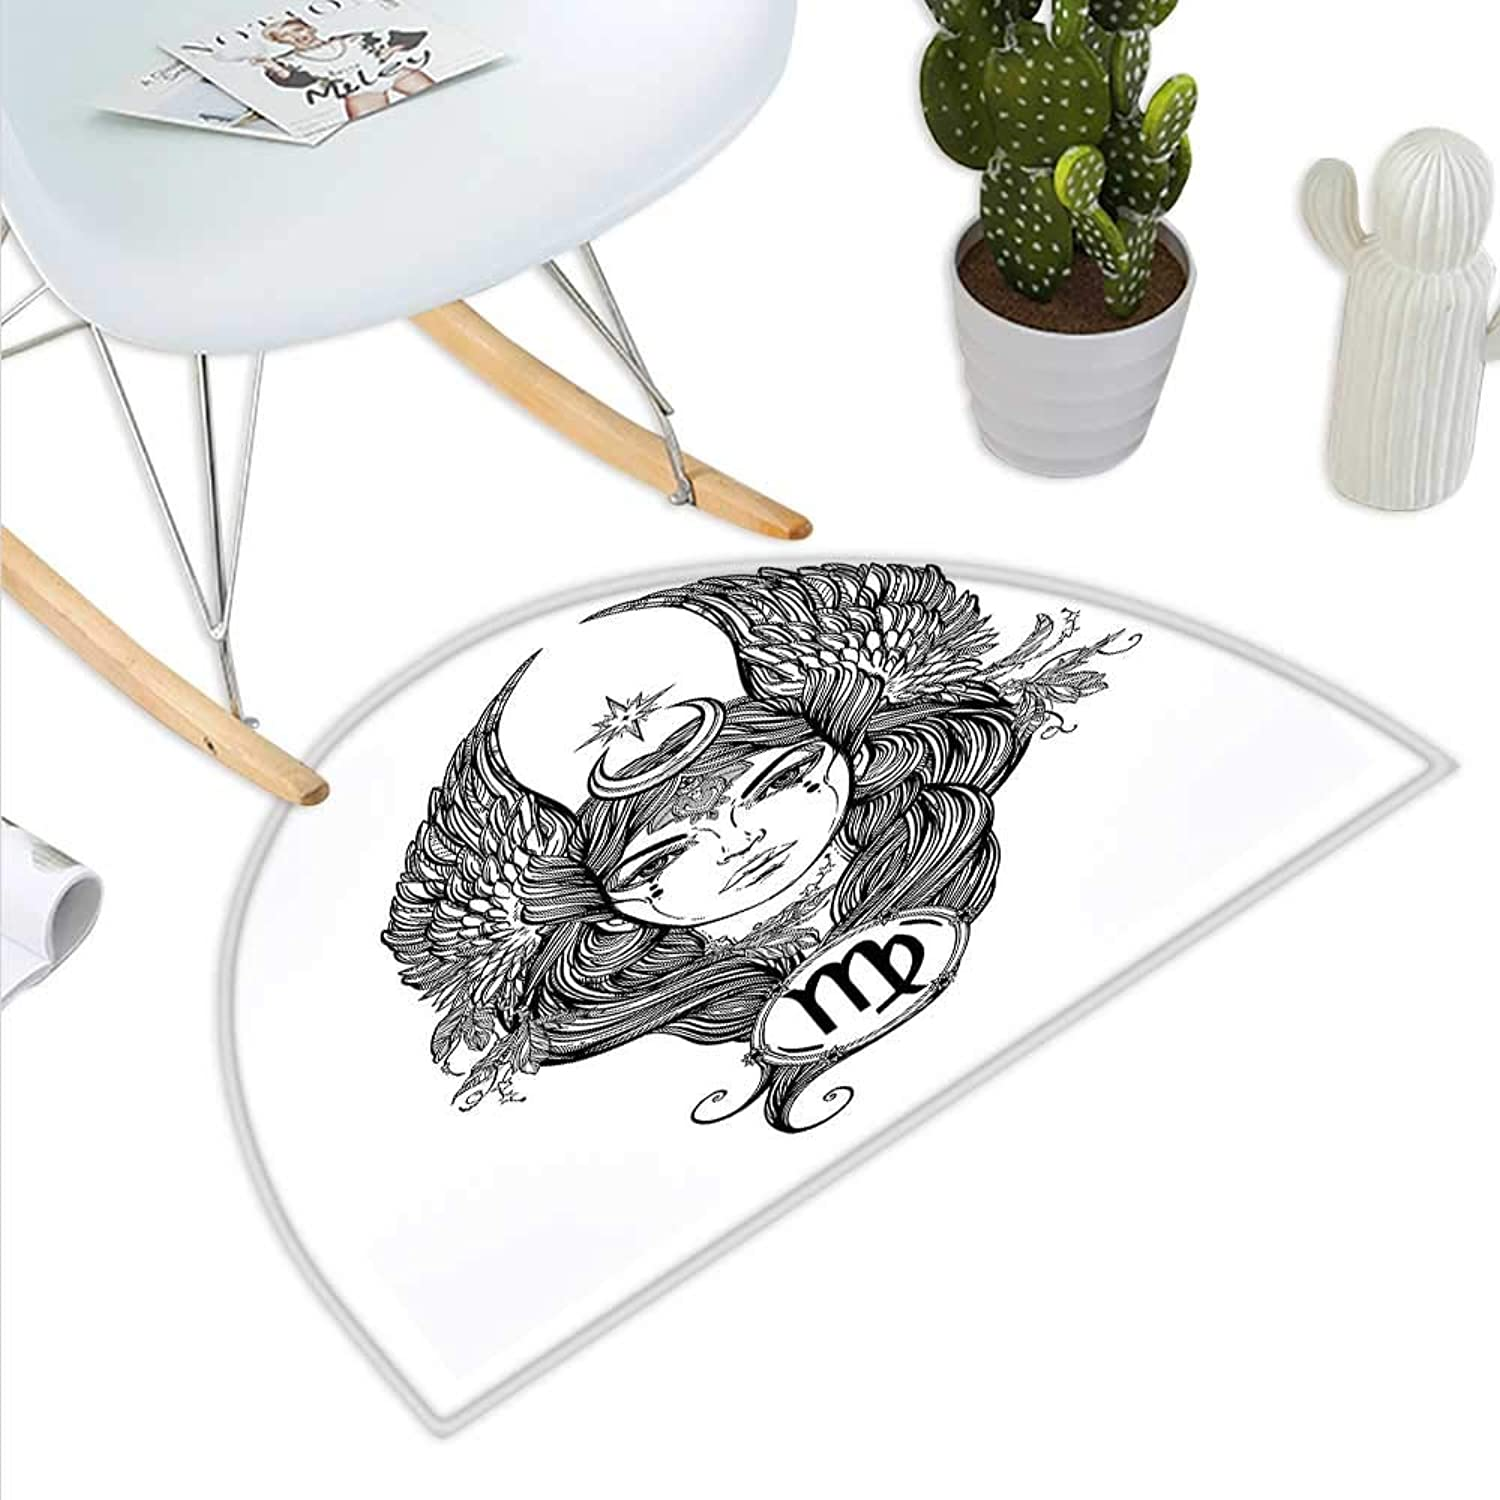 Virgo Semicircle Doormat Black and White Monochrome Drawing of a Woman with Long Hair and Wings Hgoldscope Halfmoon doormats H 31.5  xD 47.2  Black White